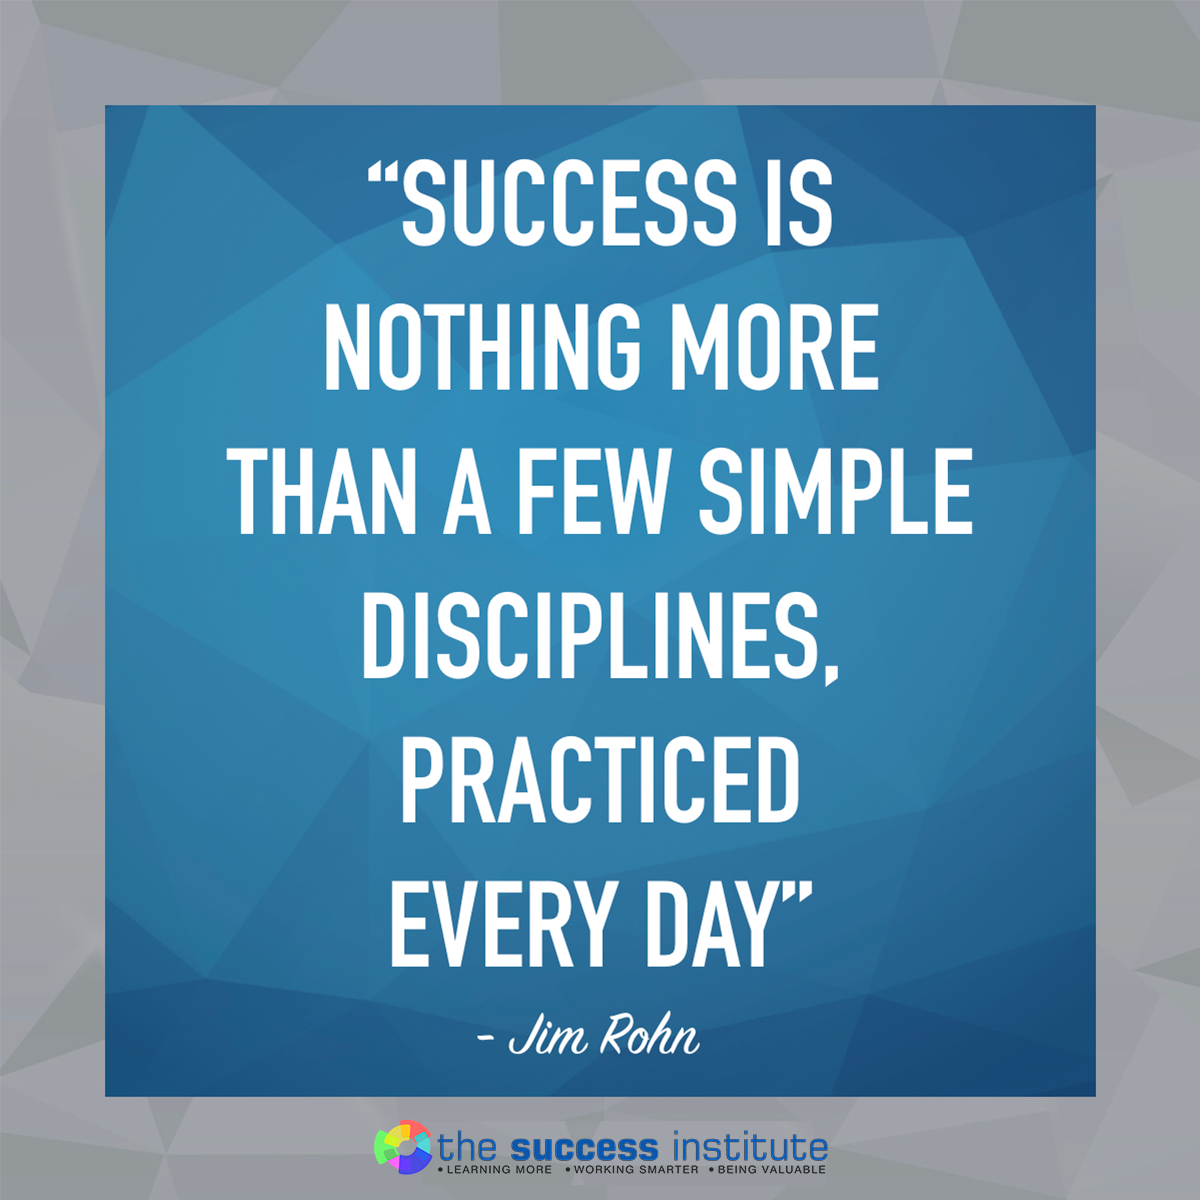 Success are disciplines practiced everyday.